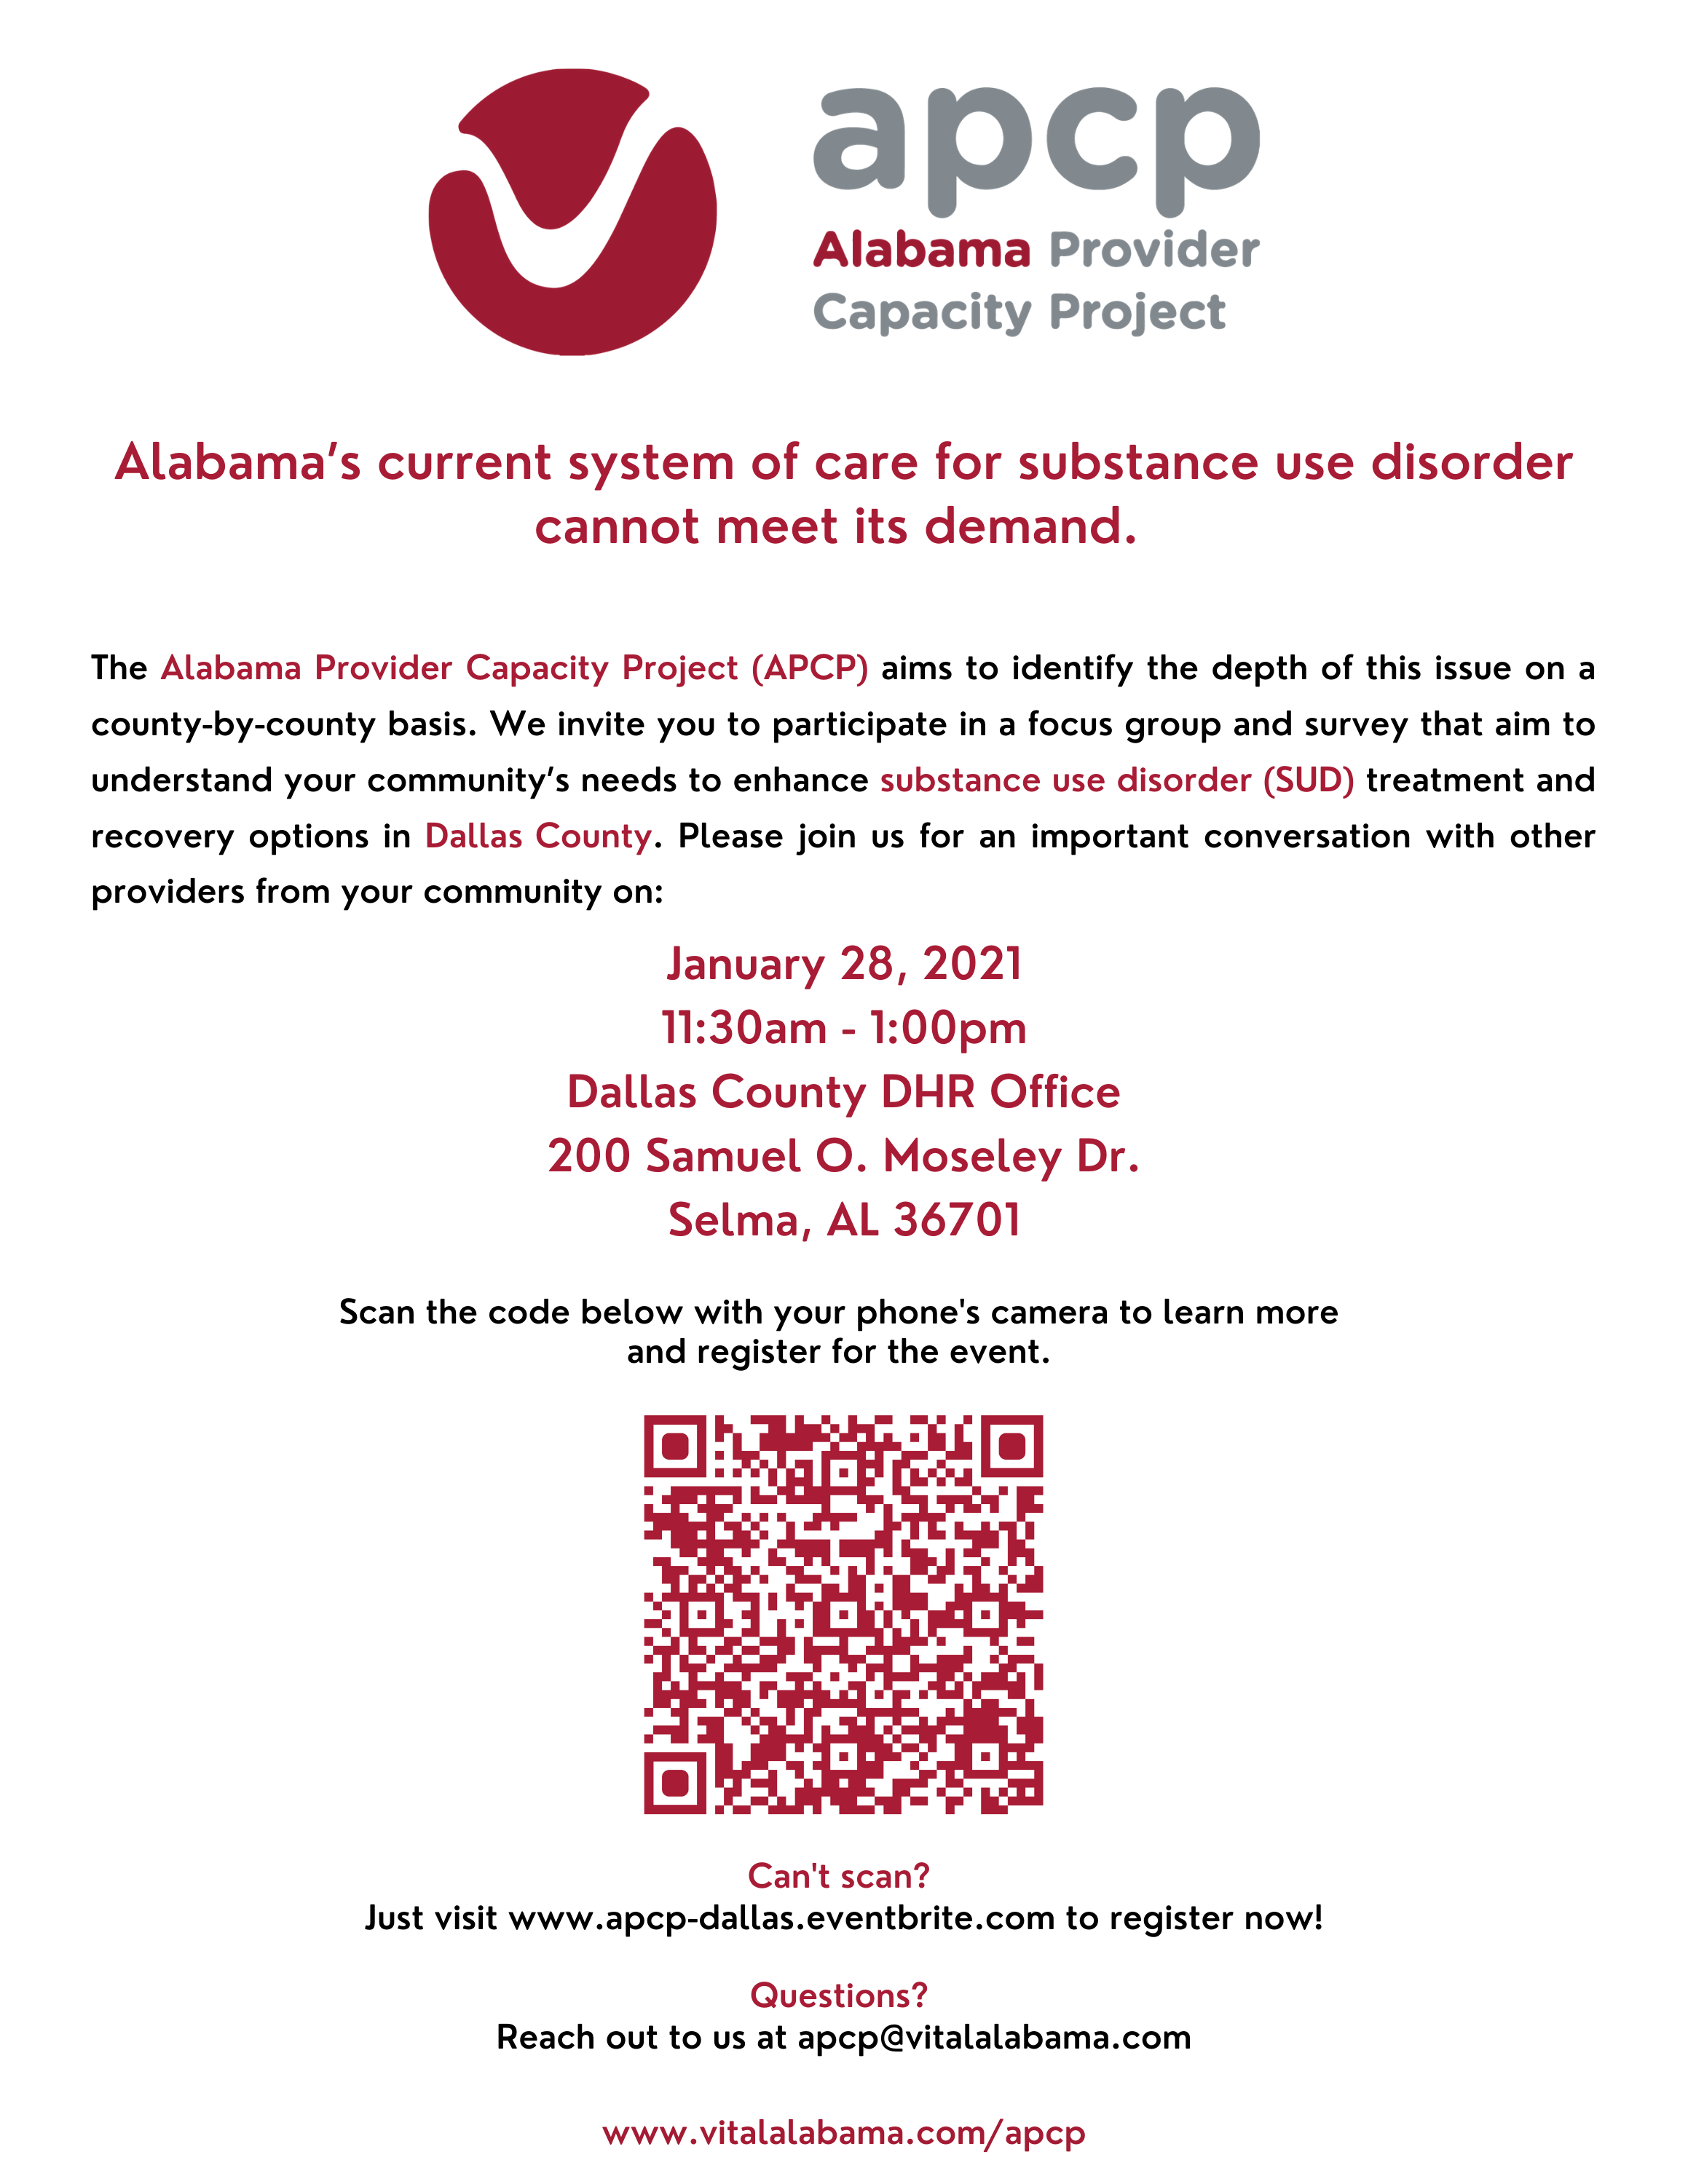 APCP_Dallas_County_Flyer.png